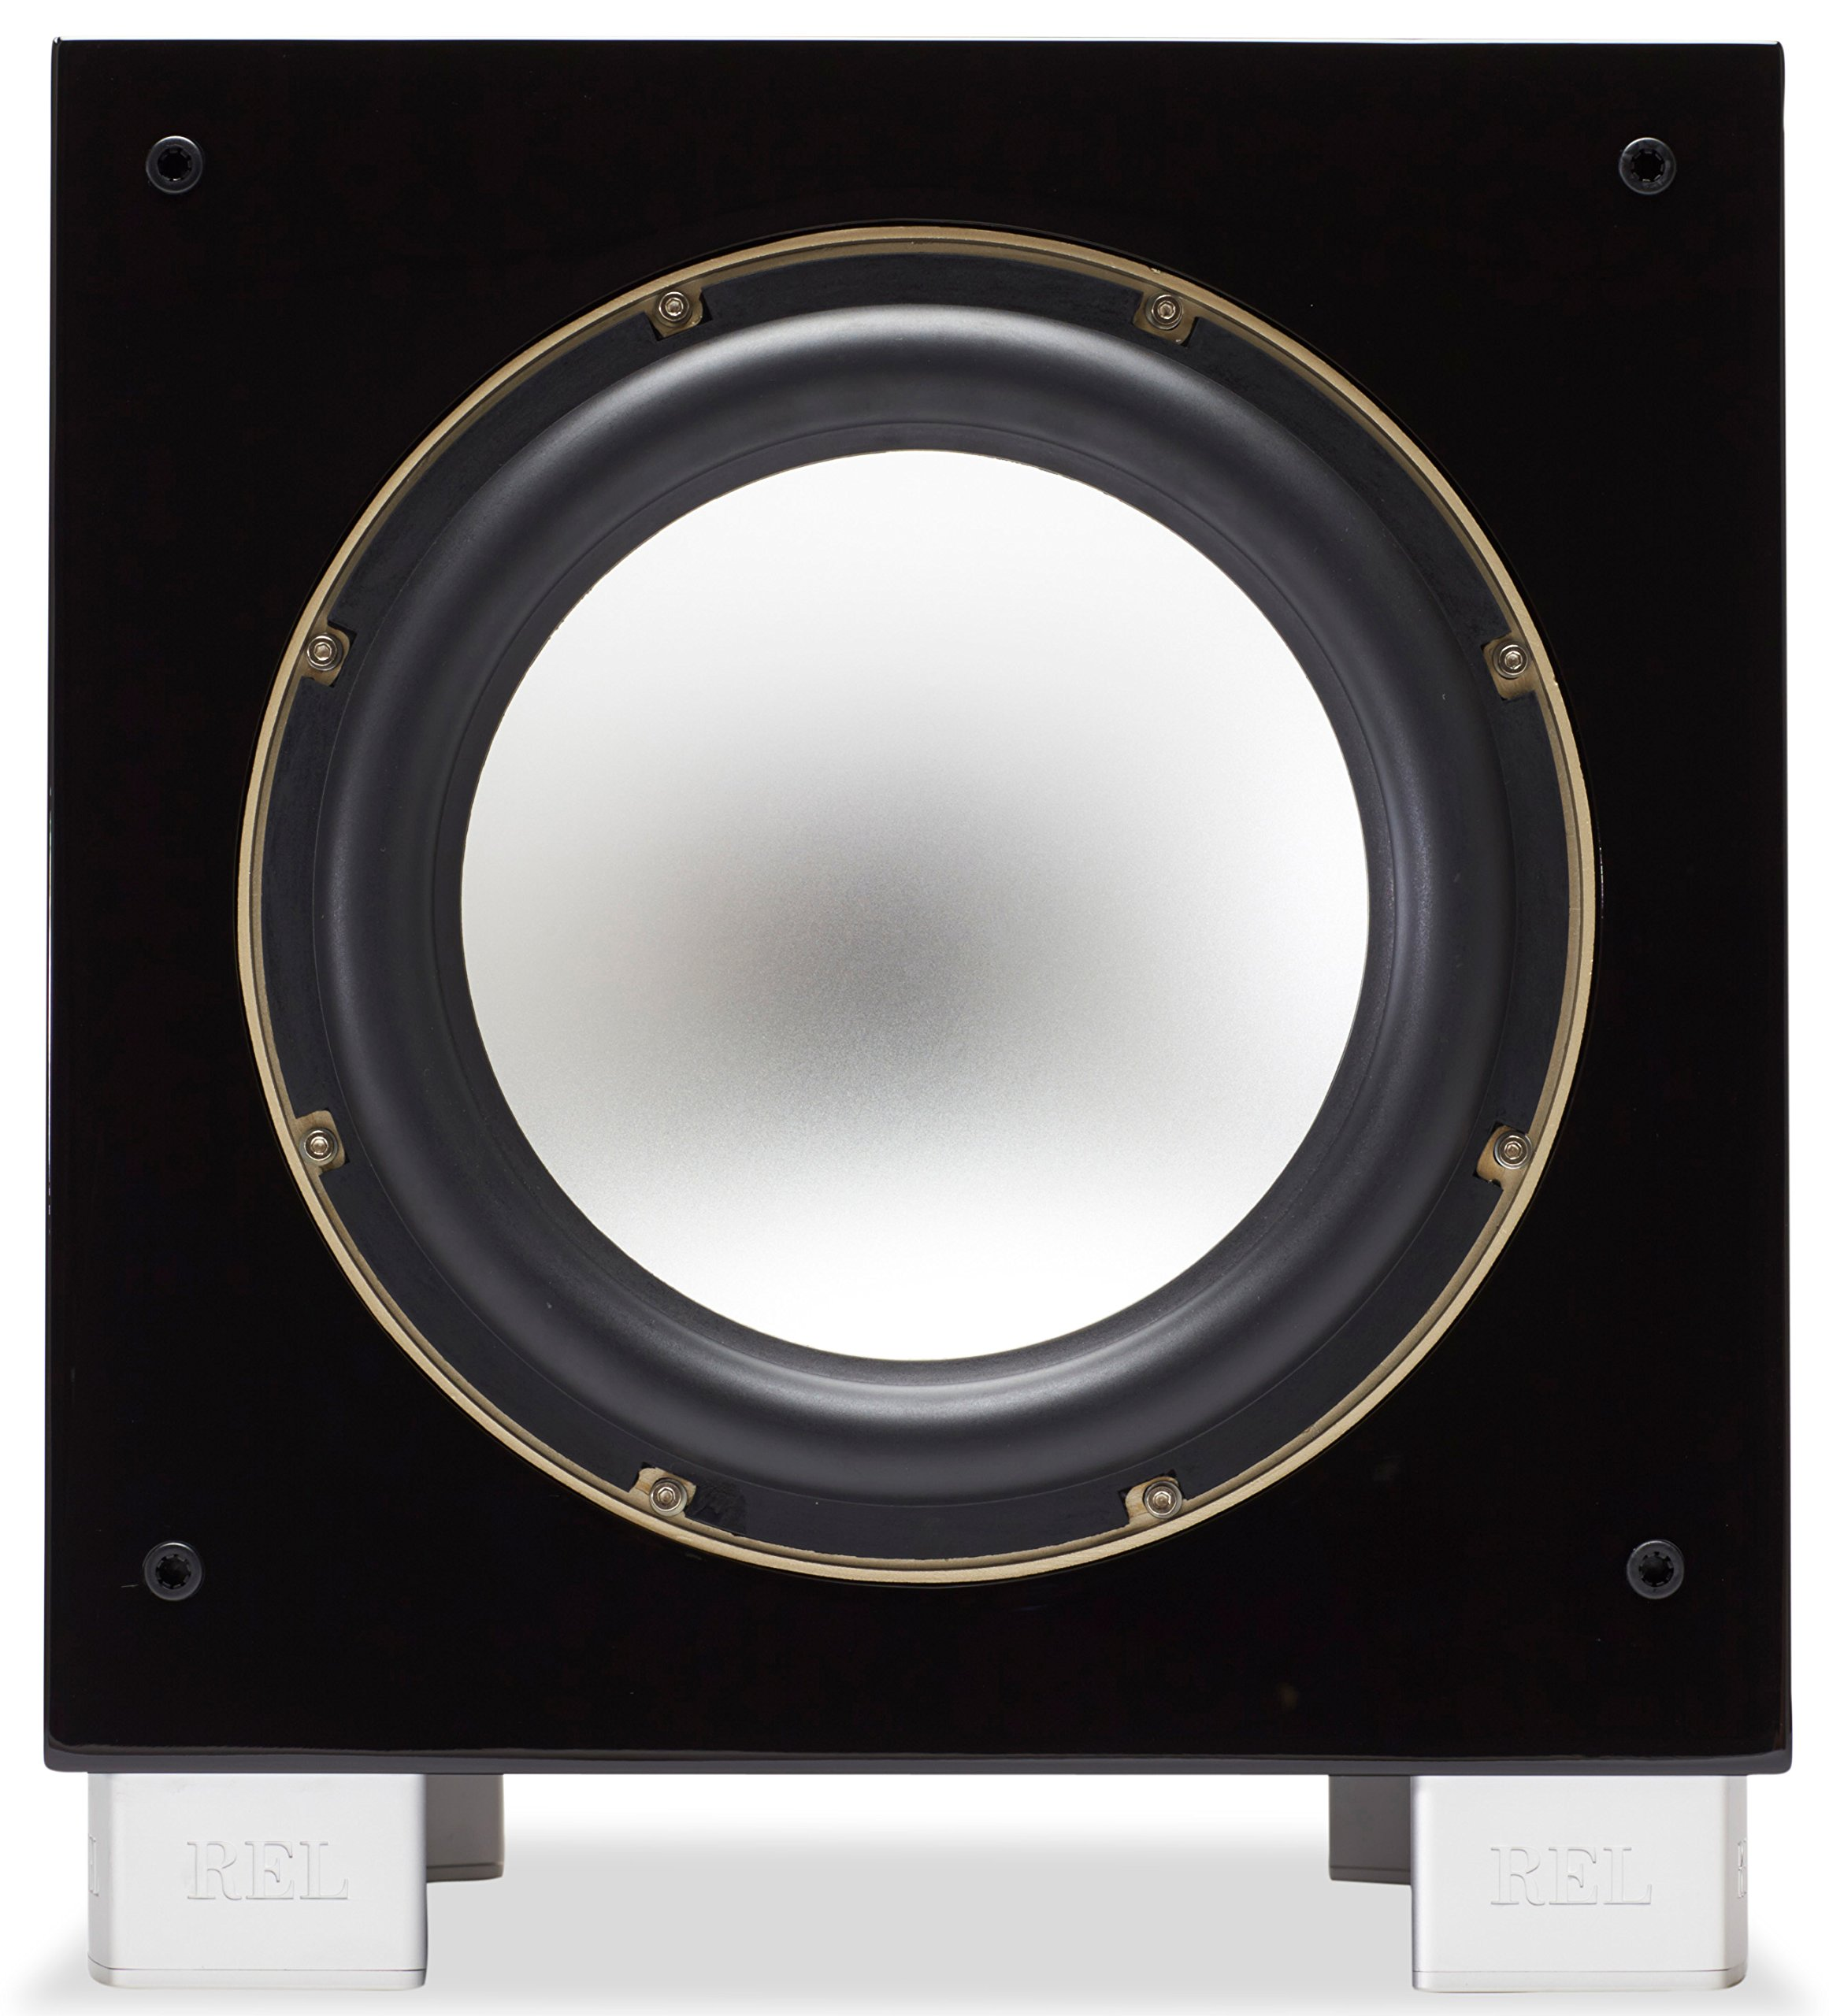 REL Acoustics S/5 SHO Subwoofer (Super High Output), Longbow Wireless compatible, Black Lacquer